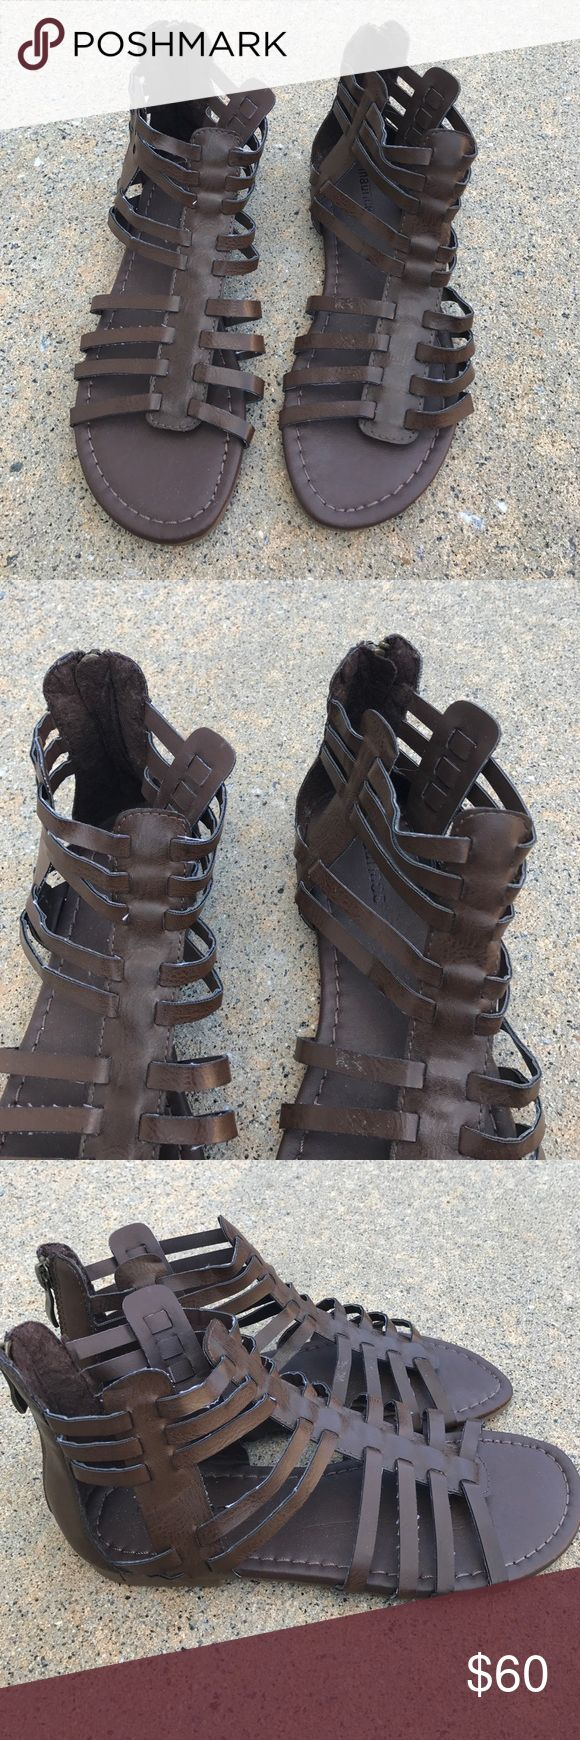 NEW size 7 brown Maurice's gladiator sandals NEW size 7 brown Maurice's gladiator sandals Maurices Shoes Sandals